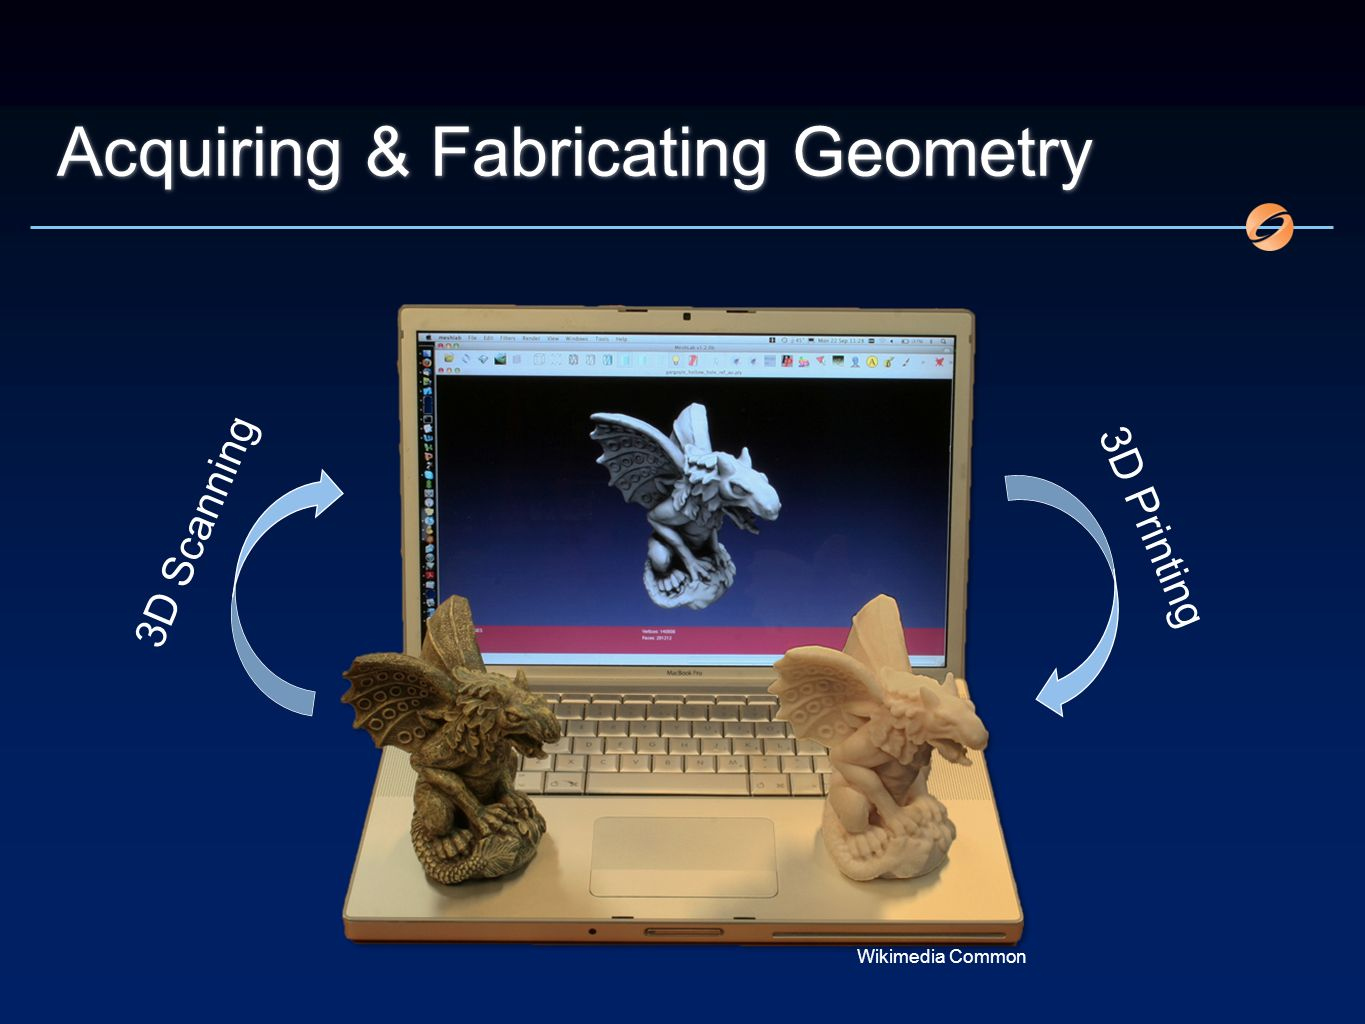 Acquiring & Fabricating Geometry 3D Scanning 3D Printing Wikimedia Common